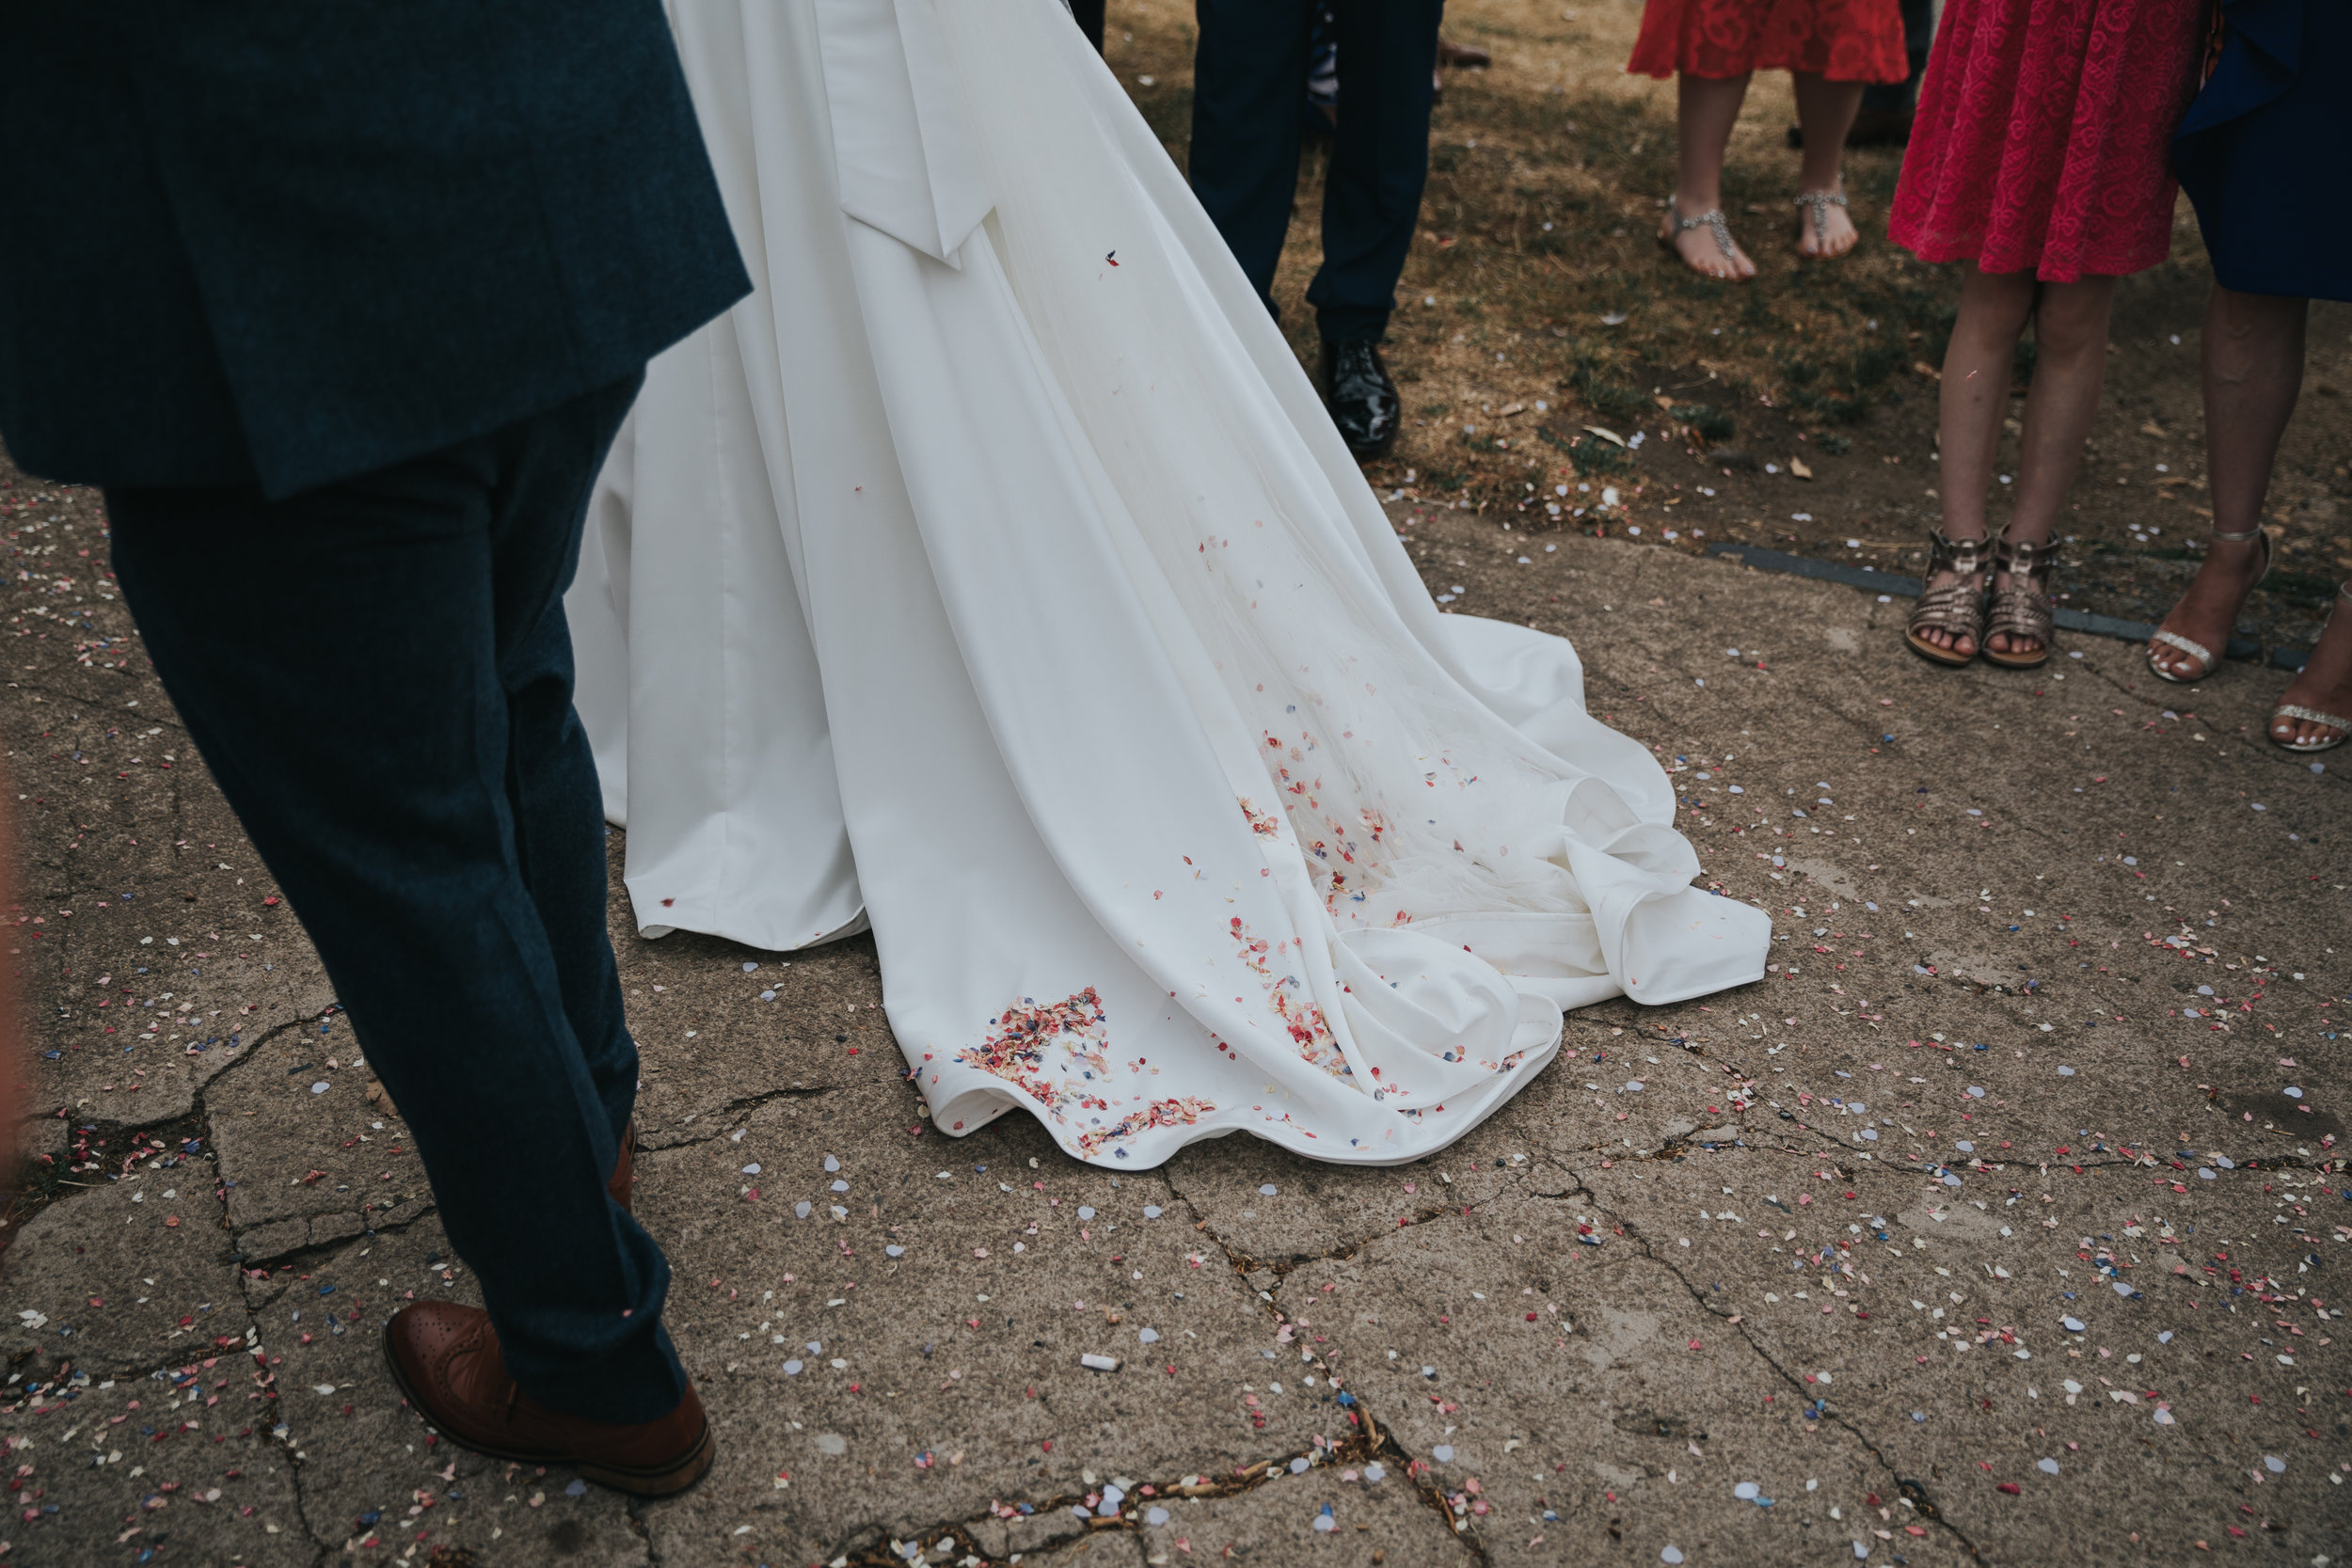 Confetti on brides dress.